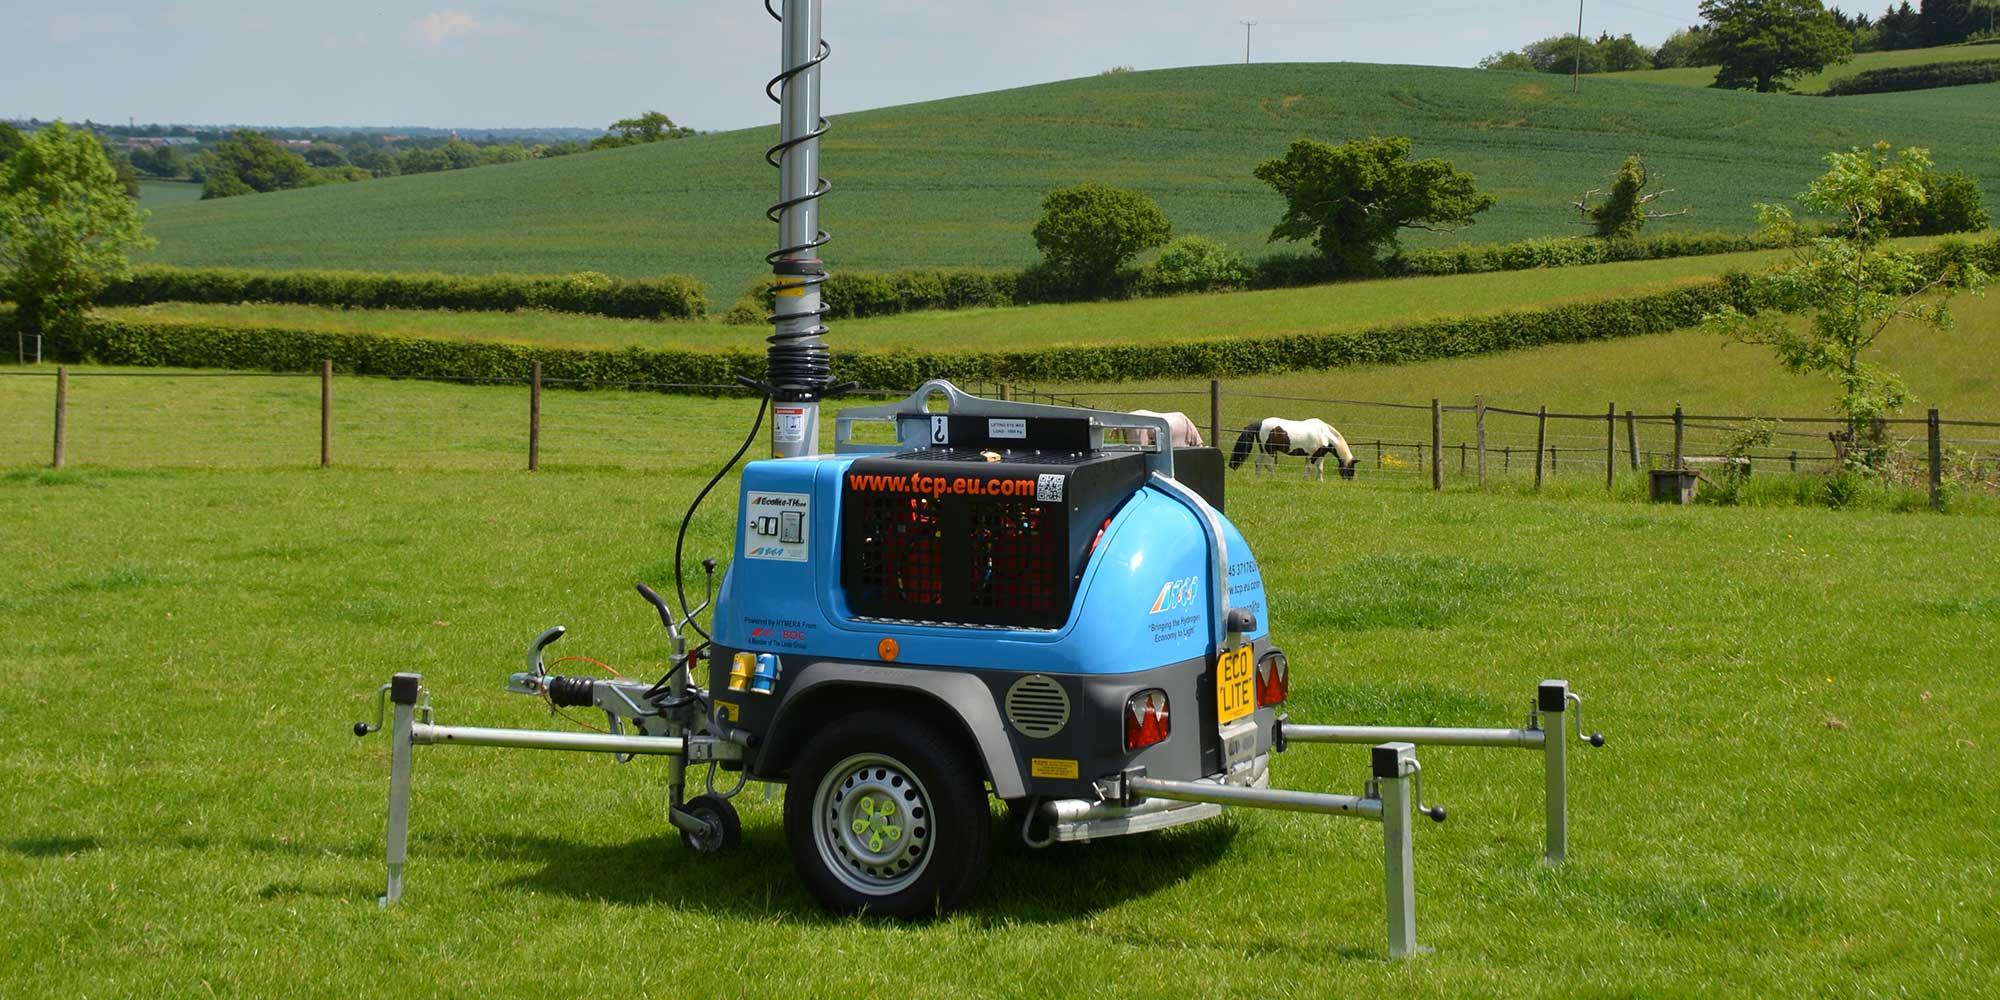 Ecolite TH200 hydrogen mobile lighting tower